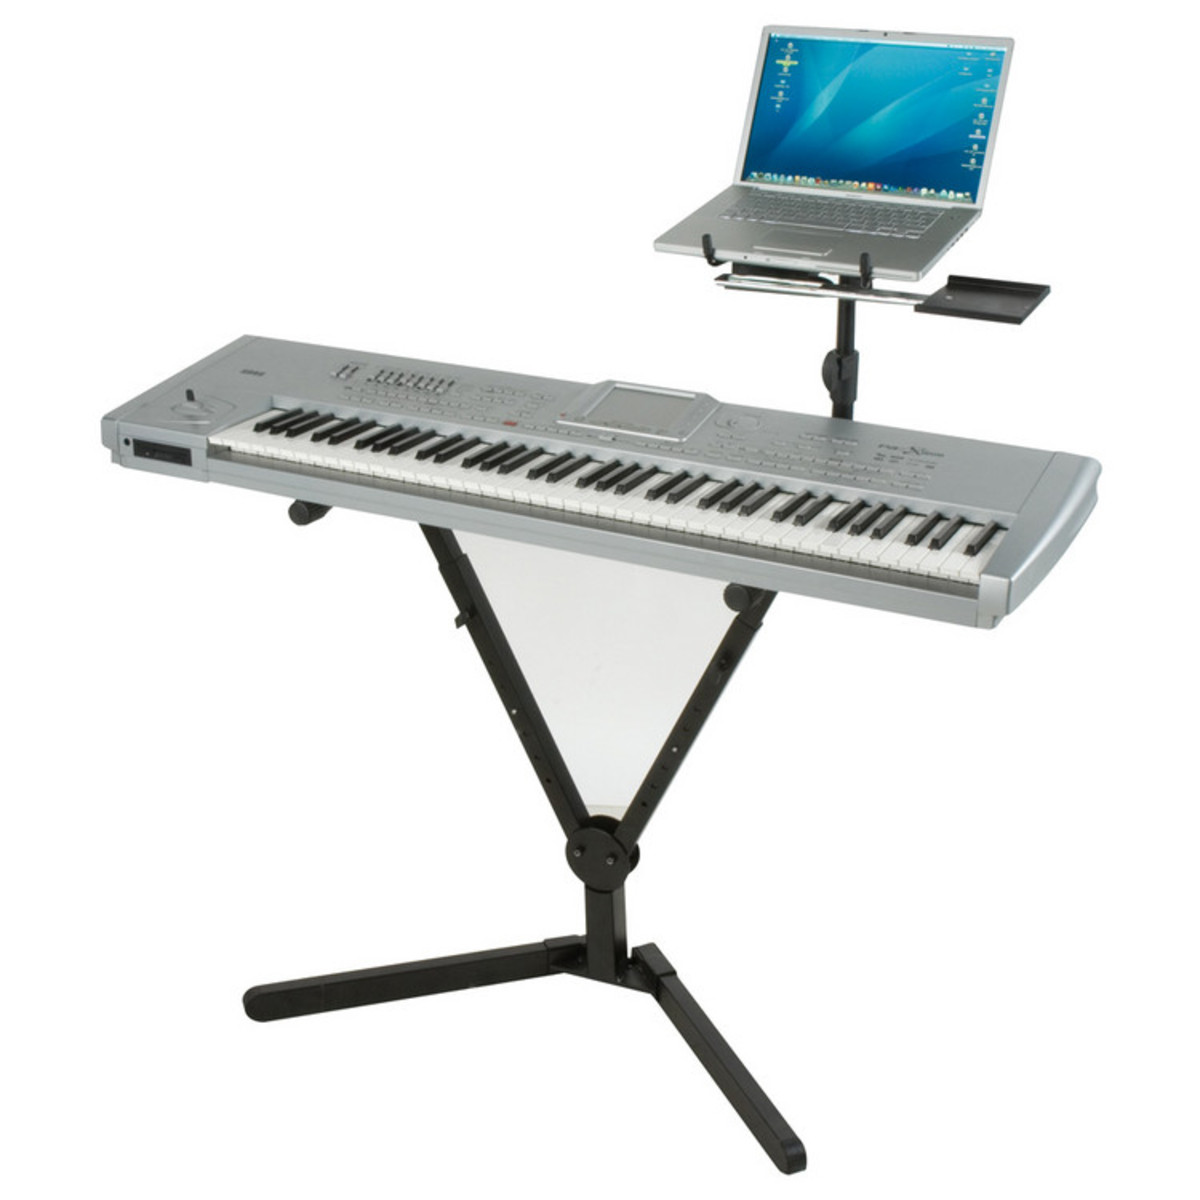 Quiklok Qly40 Y Shaped Single Tier Foldable Keyboard Stand